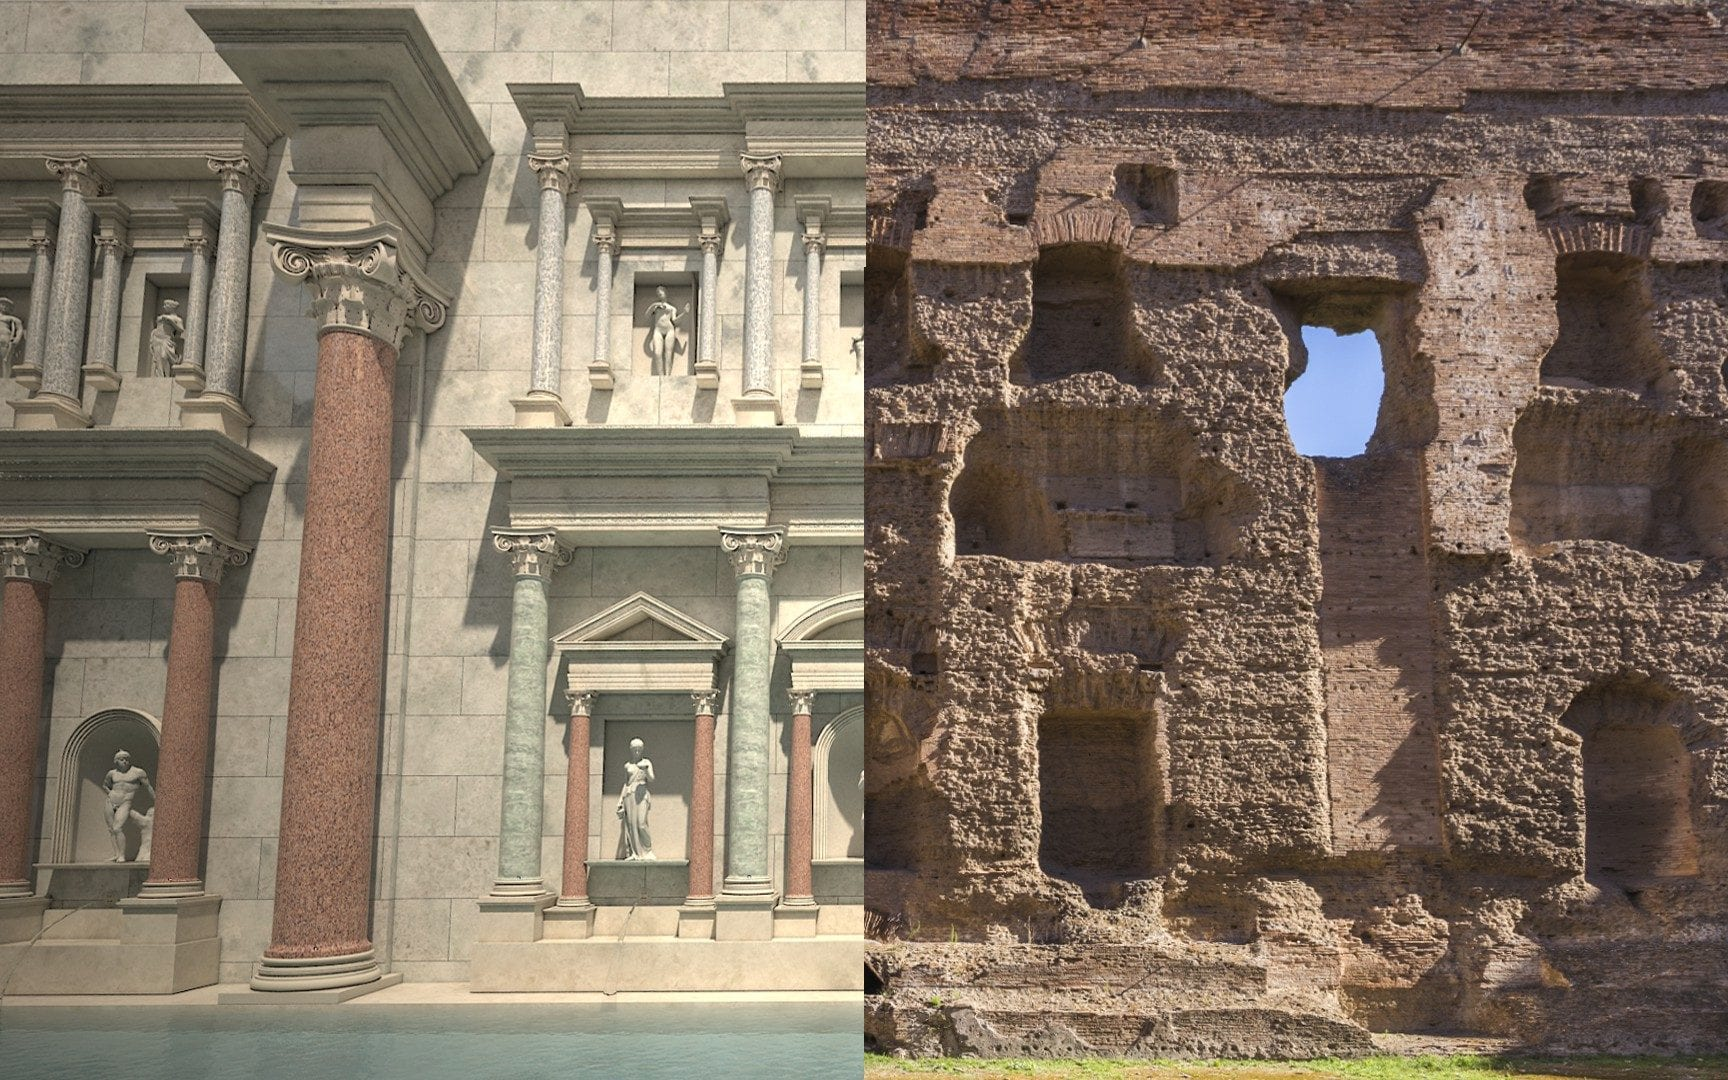 Before and after - the Baths of Caracalla as they are today and as they were nearly 2,000 years ago.CREDIT: ITALIAN CULTURE MINISTRY